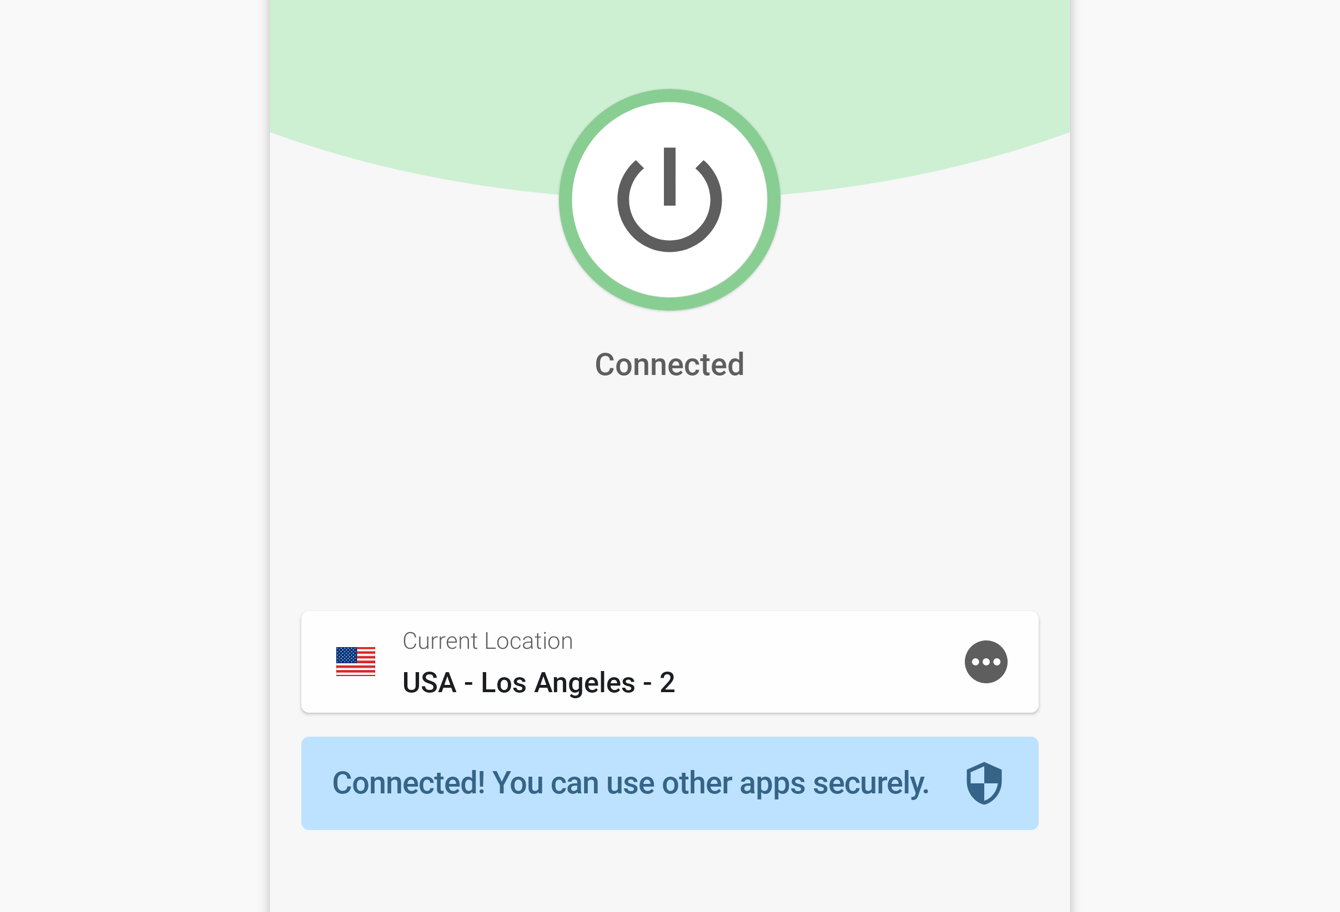 You are connected to the ExpressVPN.